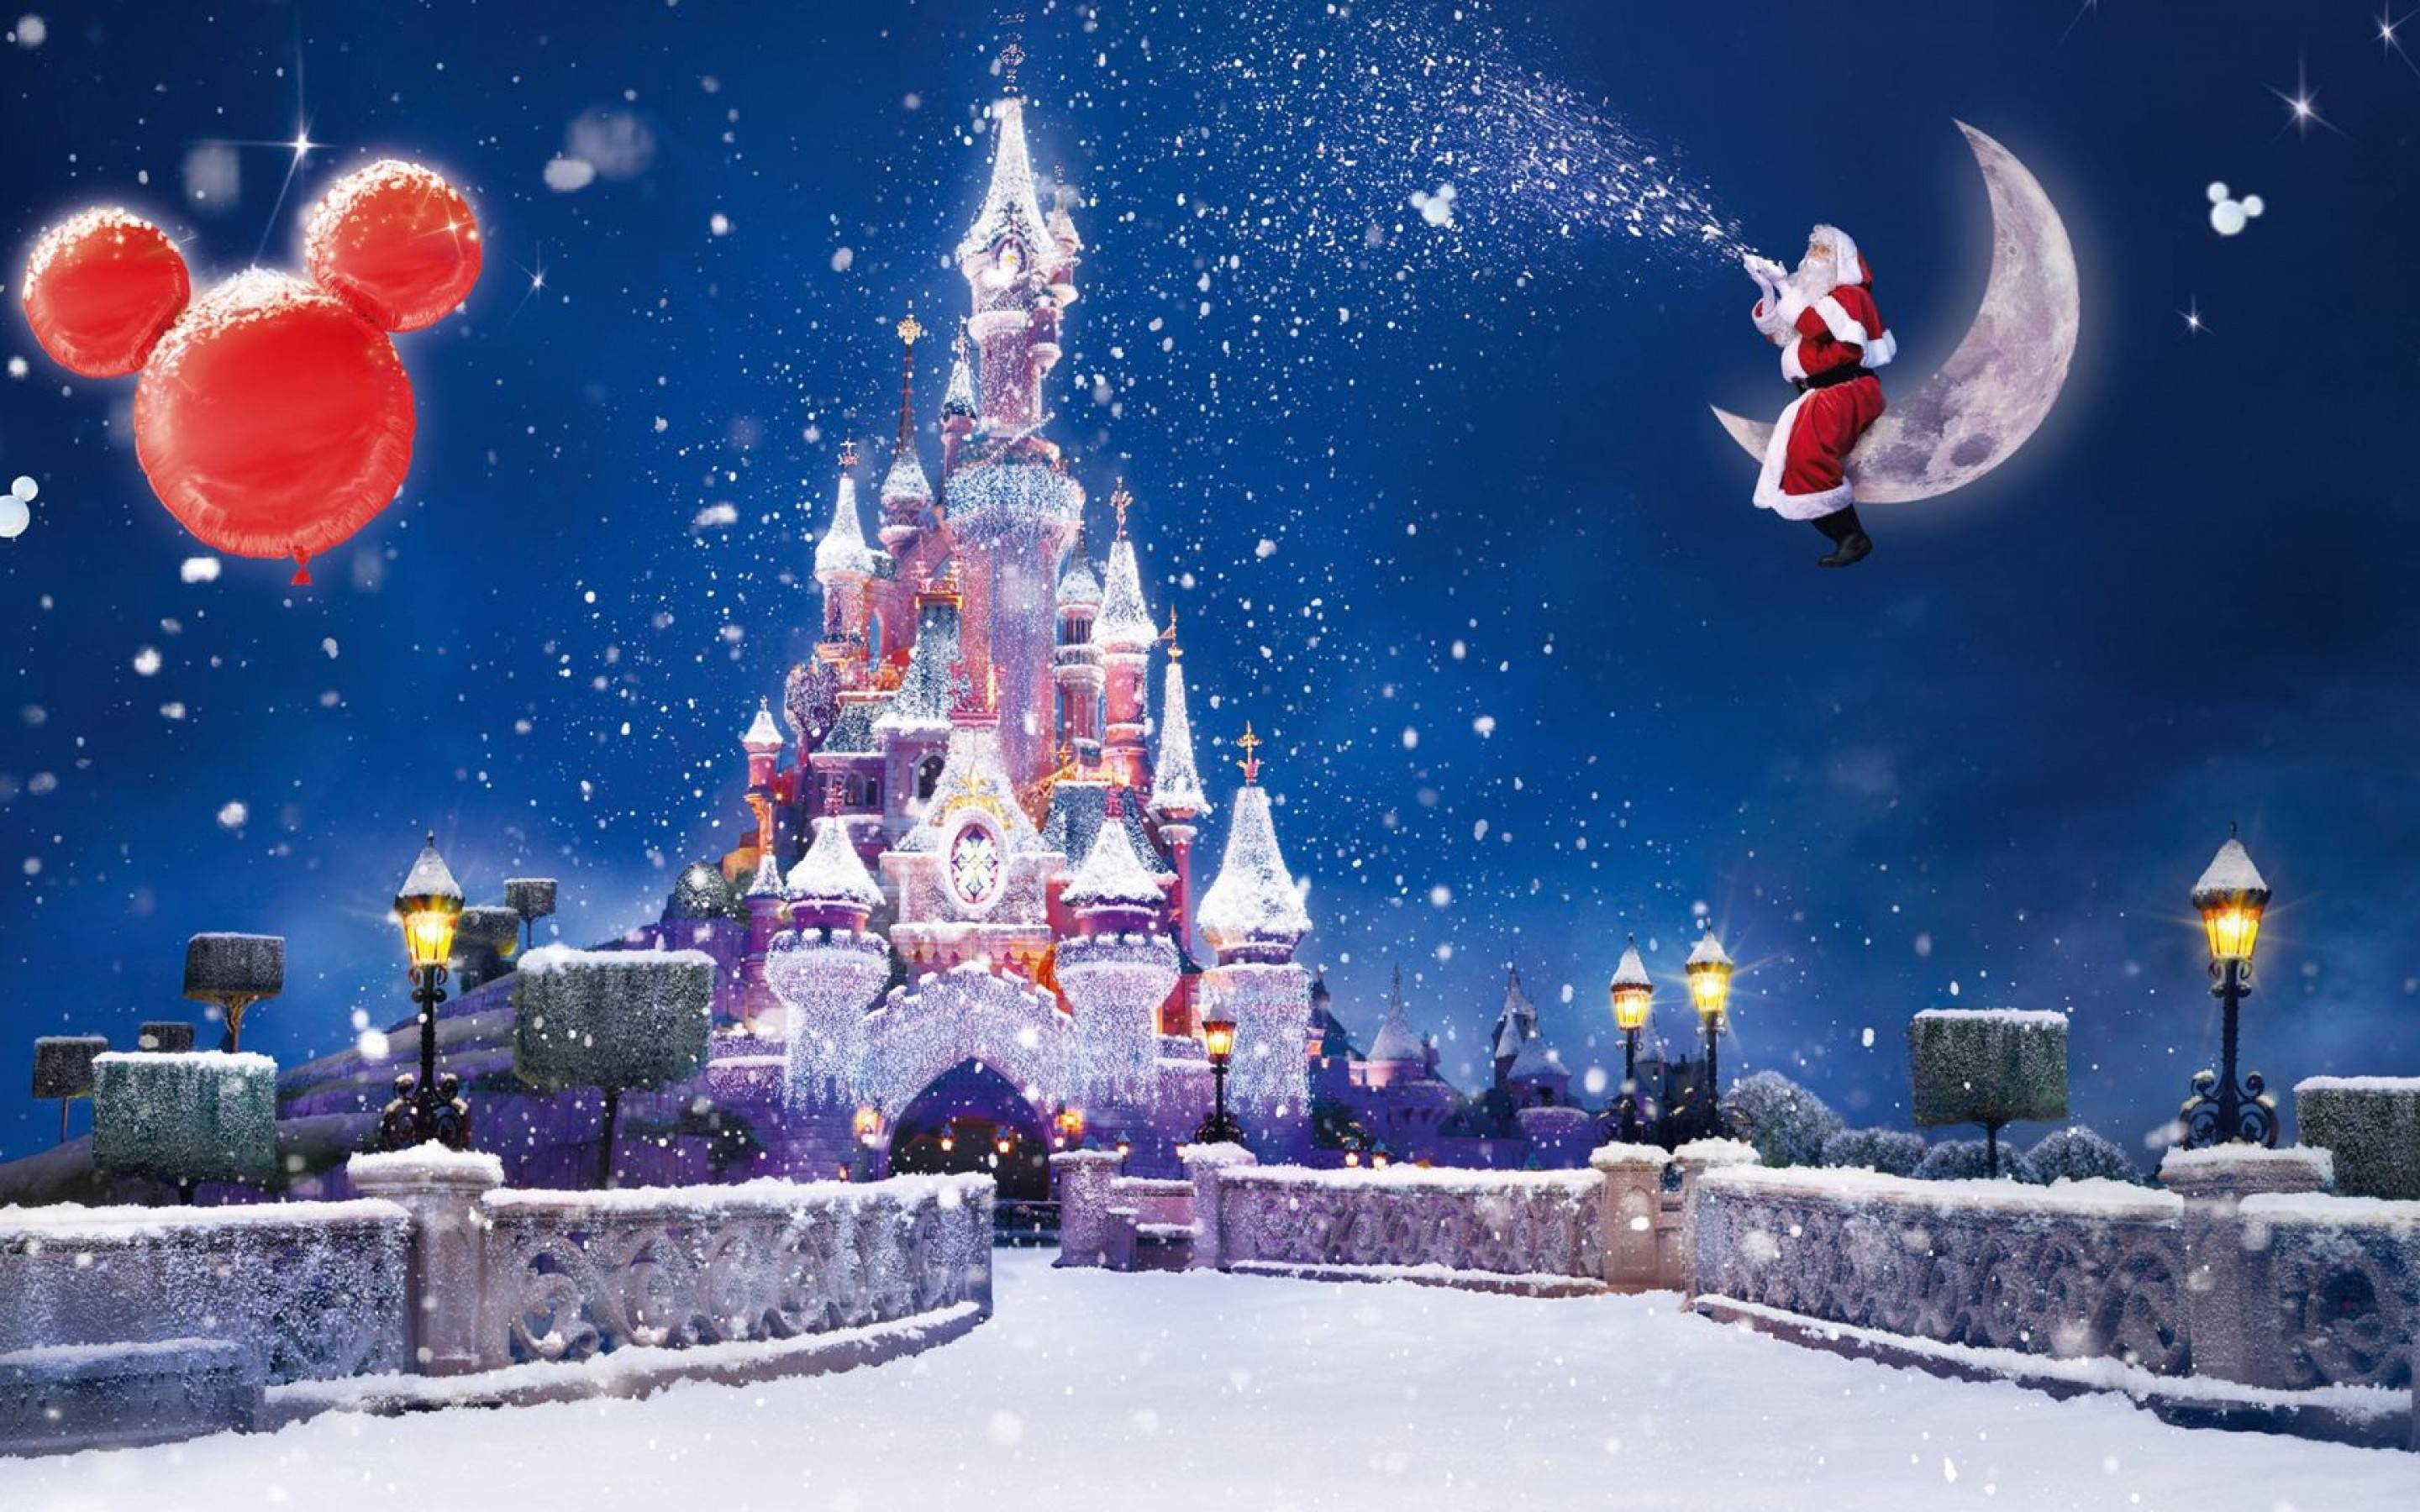 disney christmas wallpapers full hd wallpaper search page 2